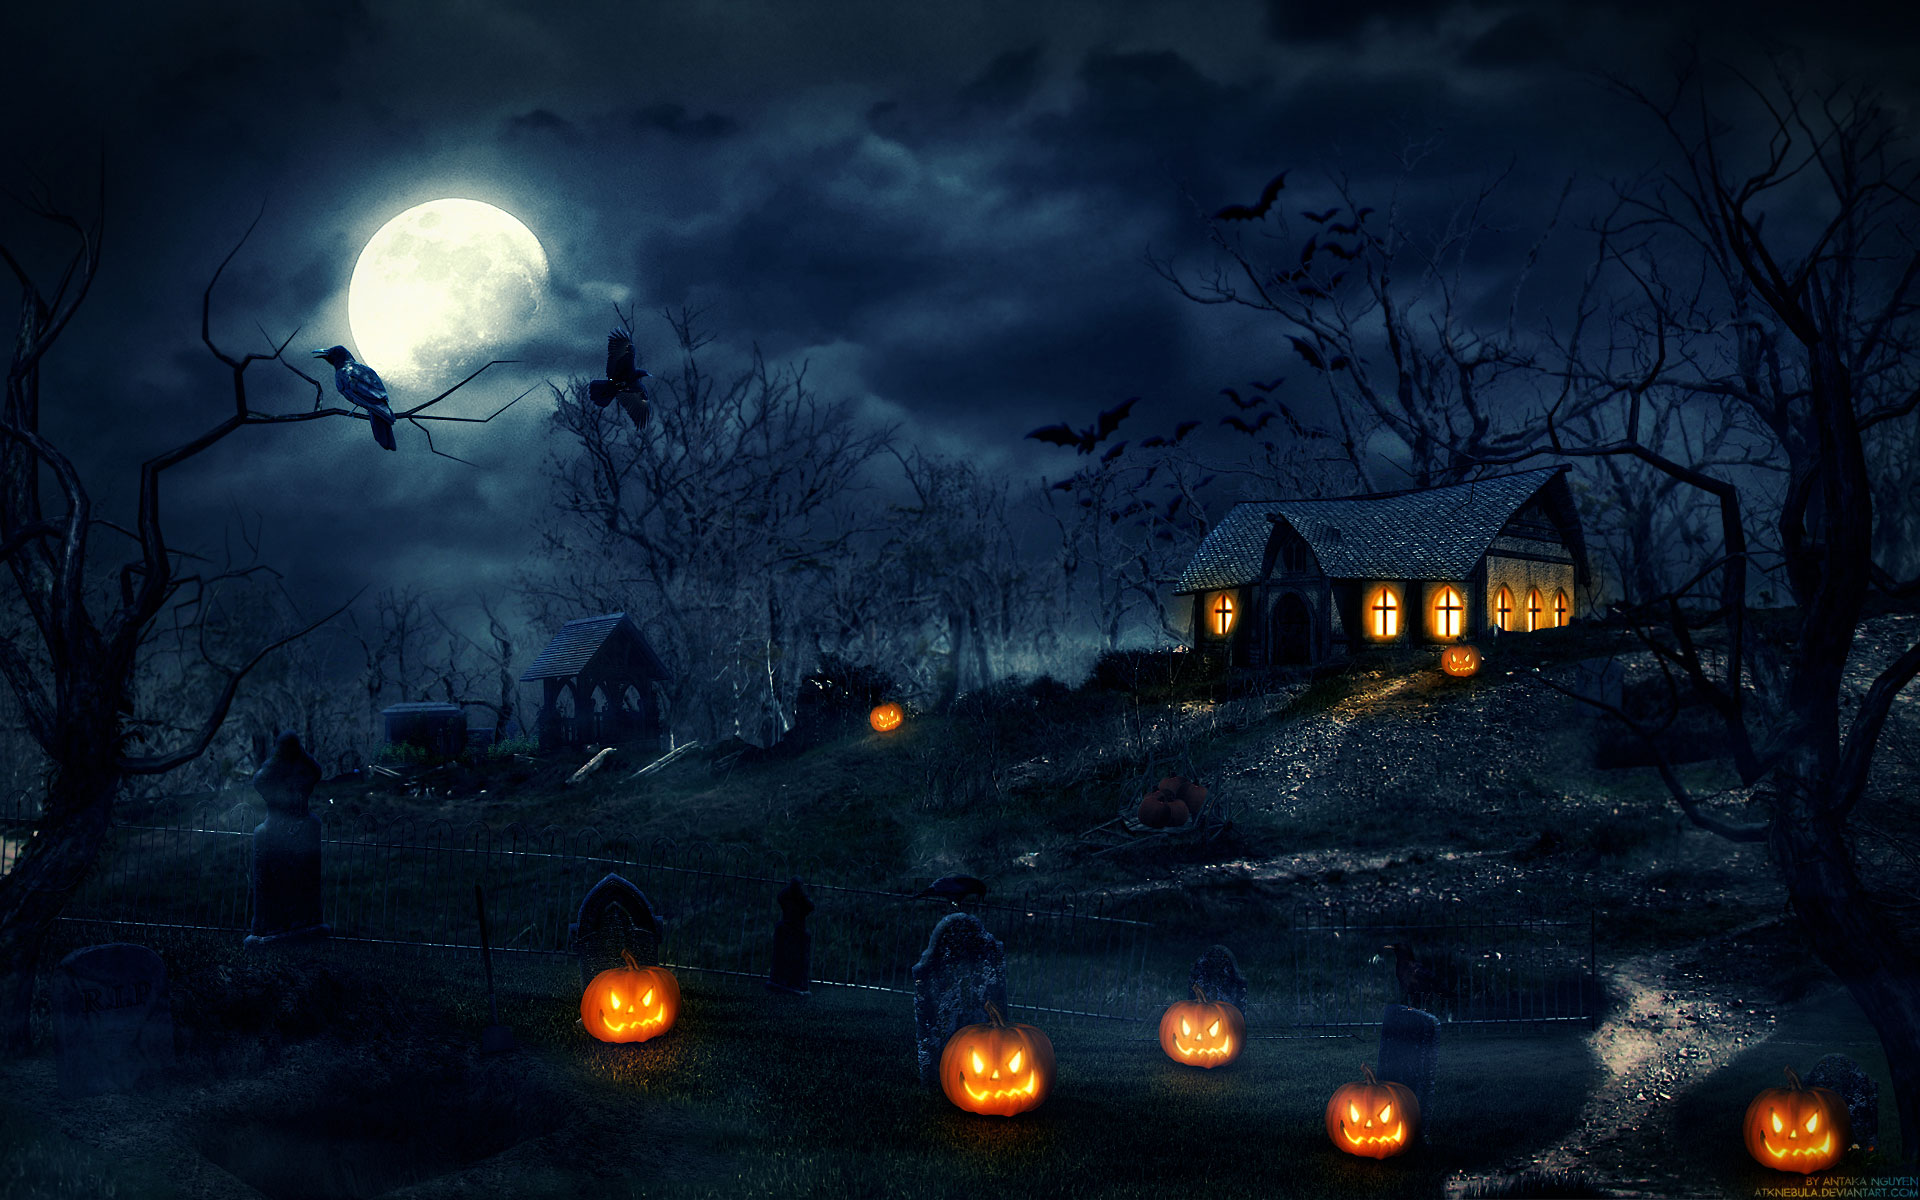 Scary Halloween Backgrounds amp Wallpaper Collection 2014 1920x1200